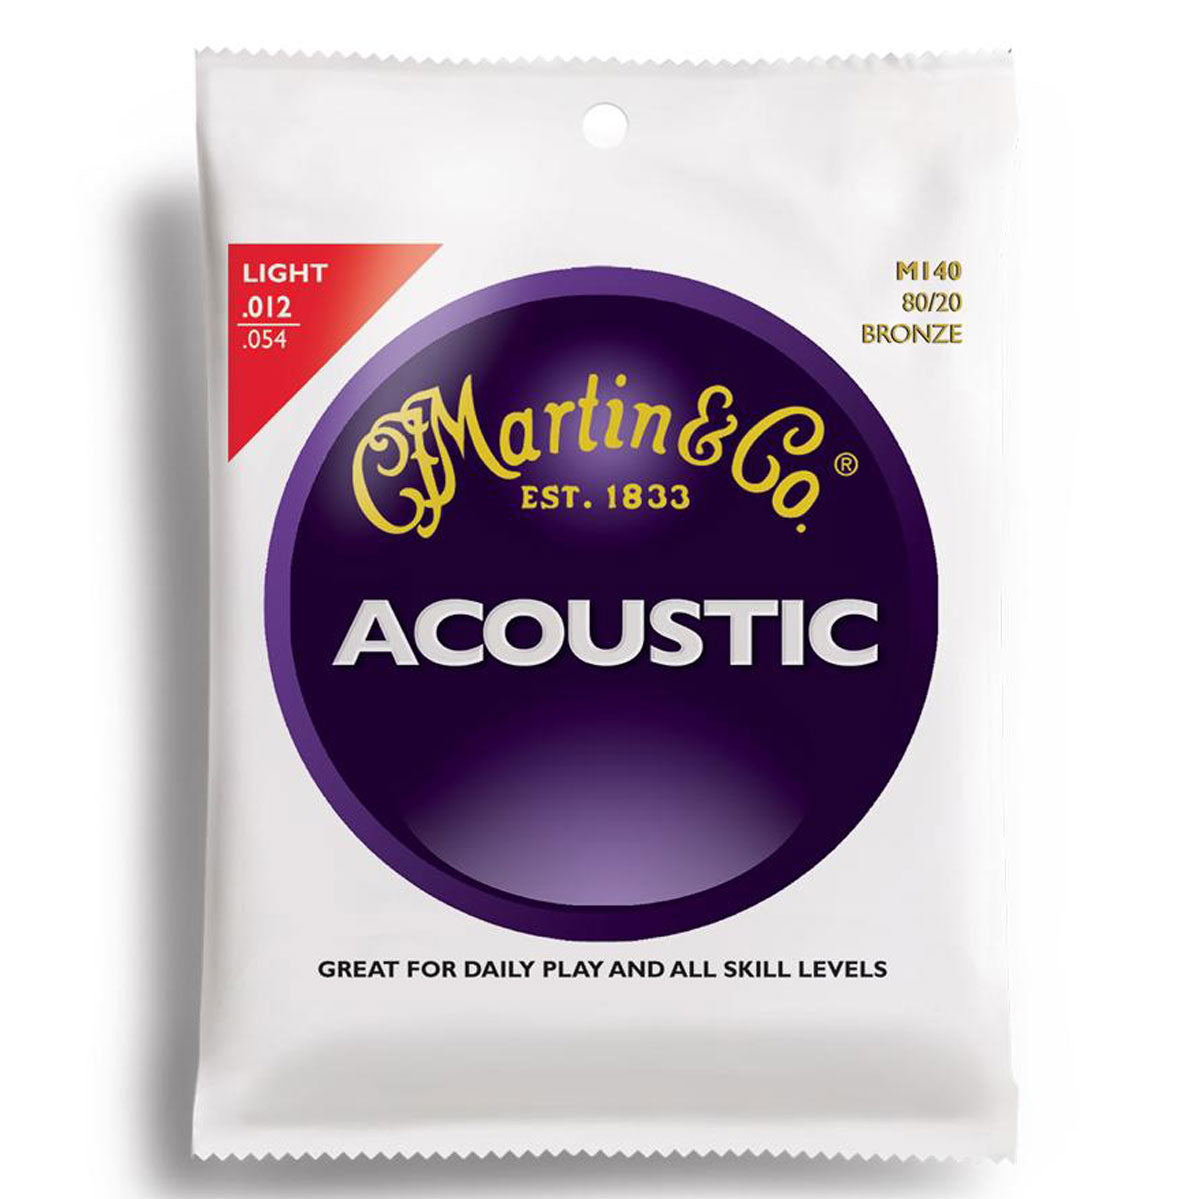 Martin M140 Bronze Light Acoustic Strings - 12-54